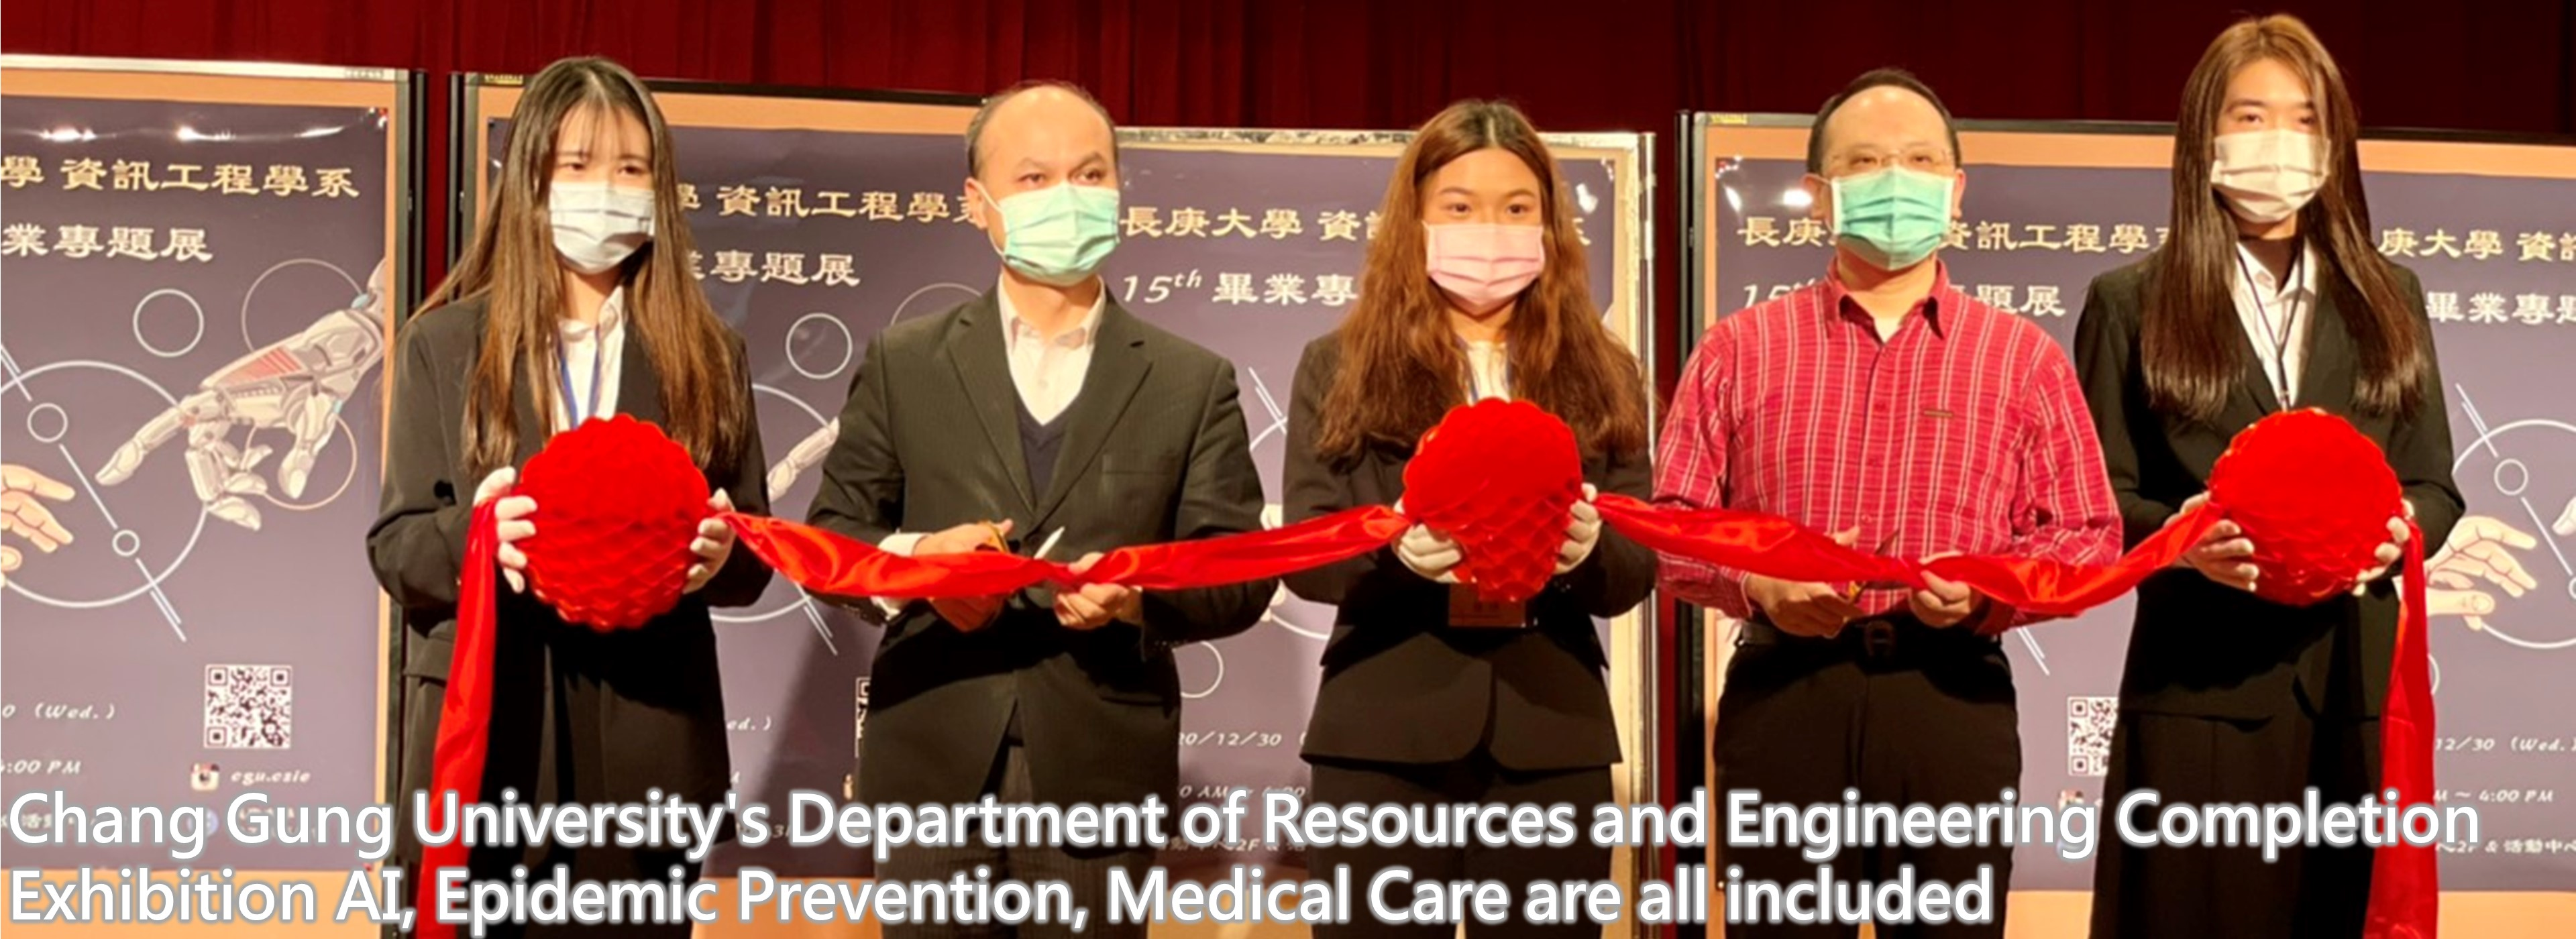 Chang Gung University's Department of Resources and Engineering Completion Exhibition AI, Epidemic Prevention, Medical Care are all included